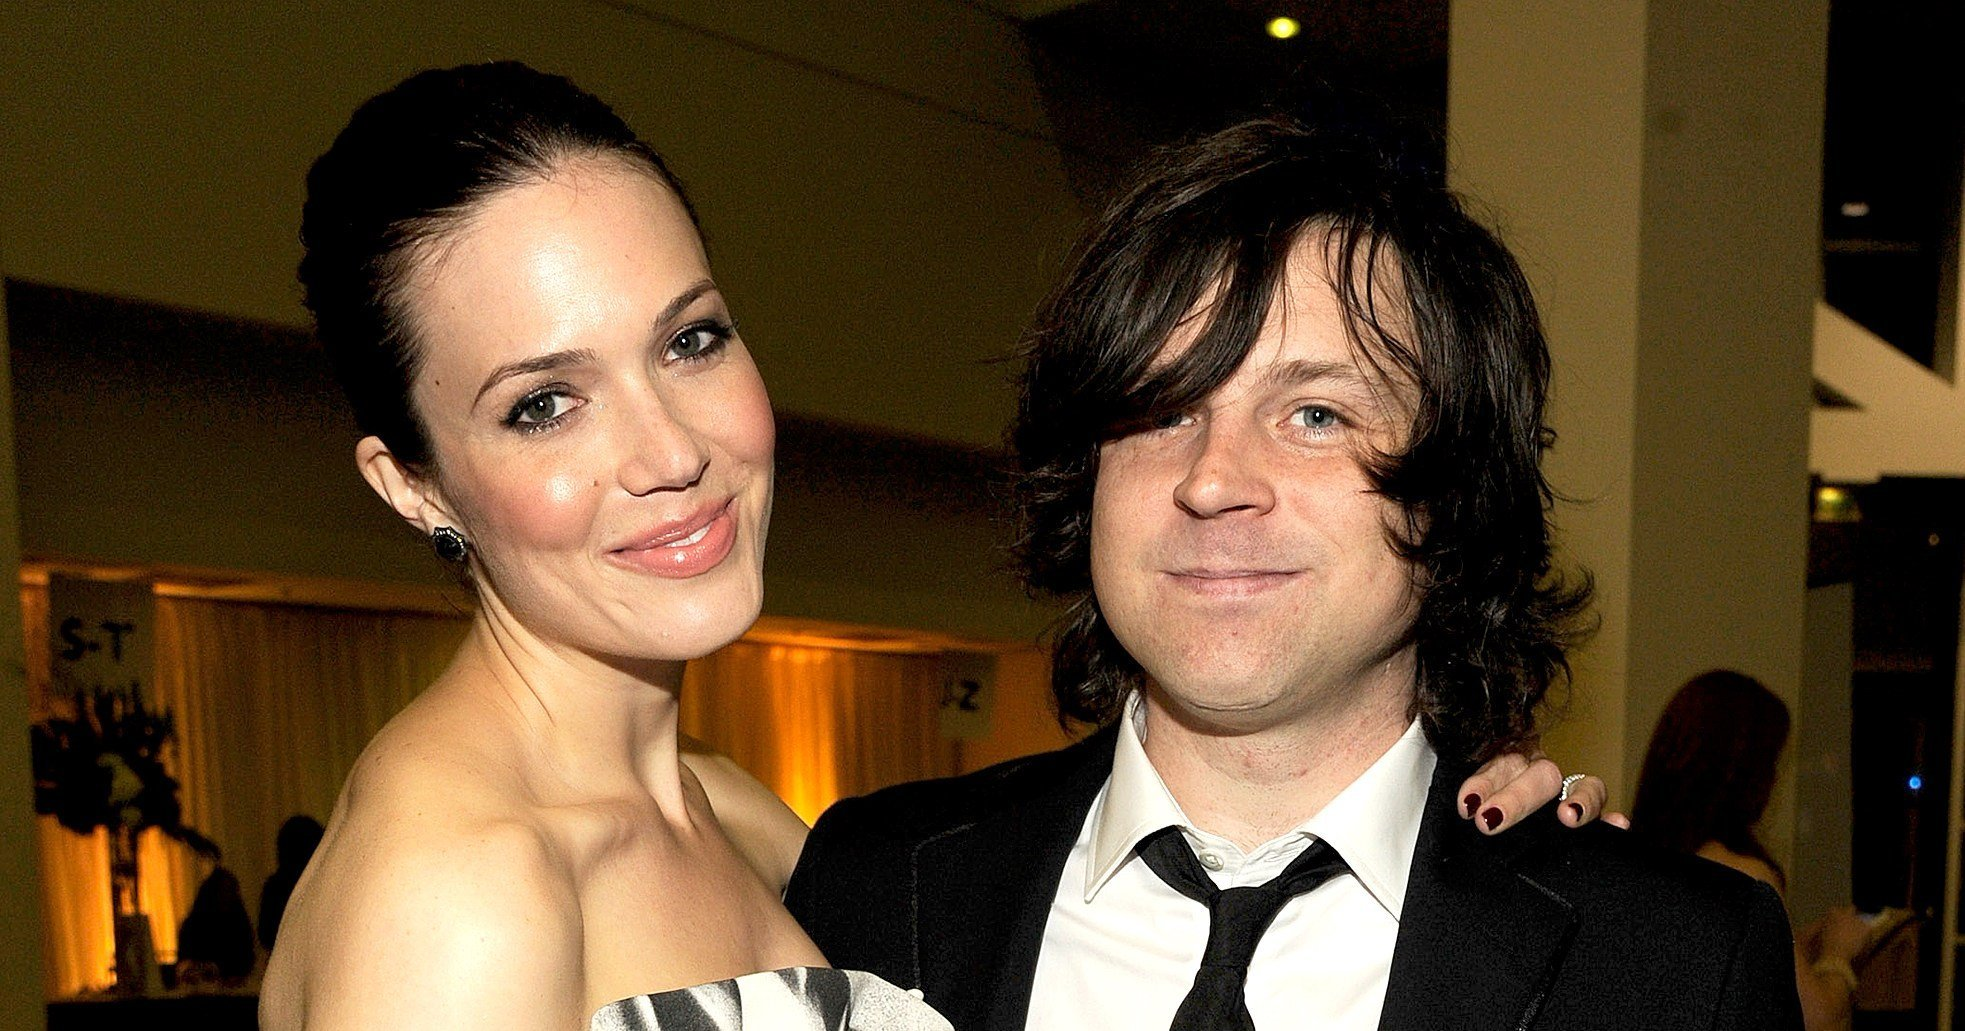 Mandy Moore Accuses Ex-Husband Ryan Adams of Being Psychologically Abusive